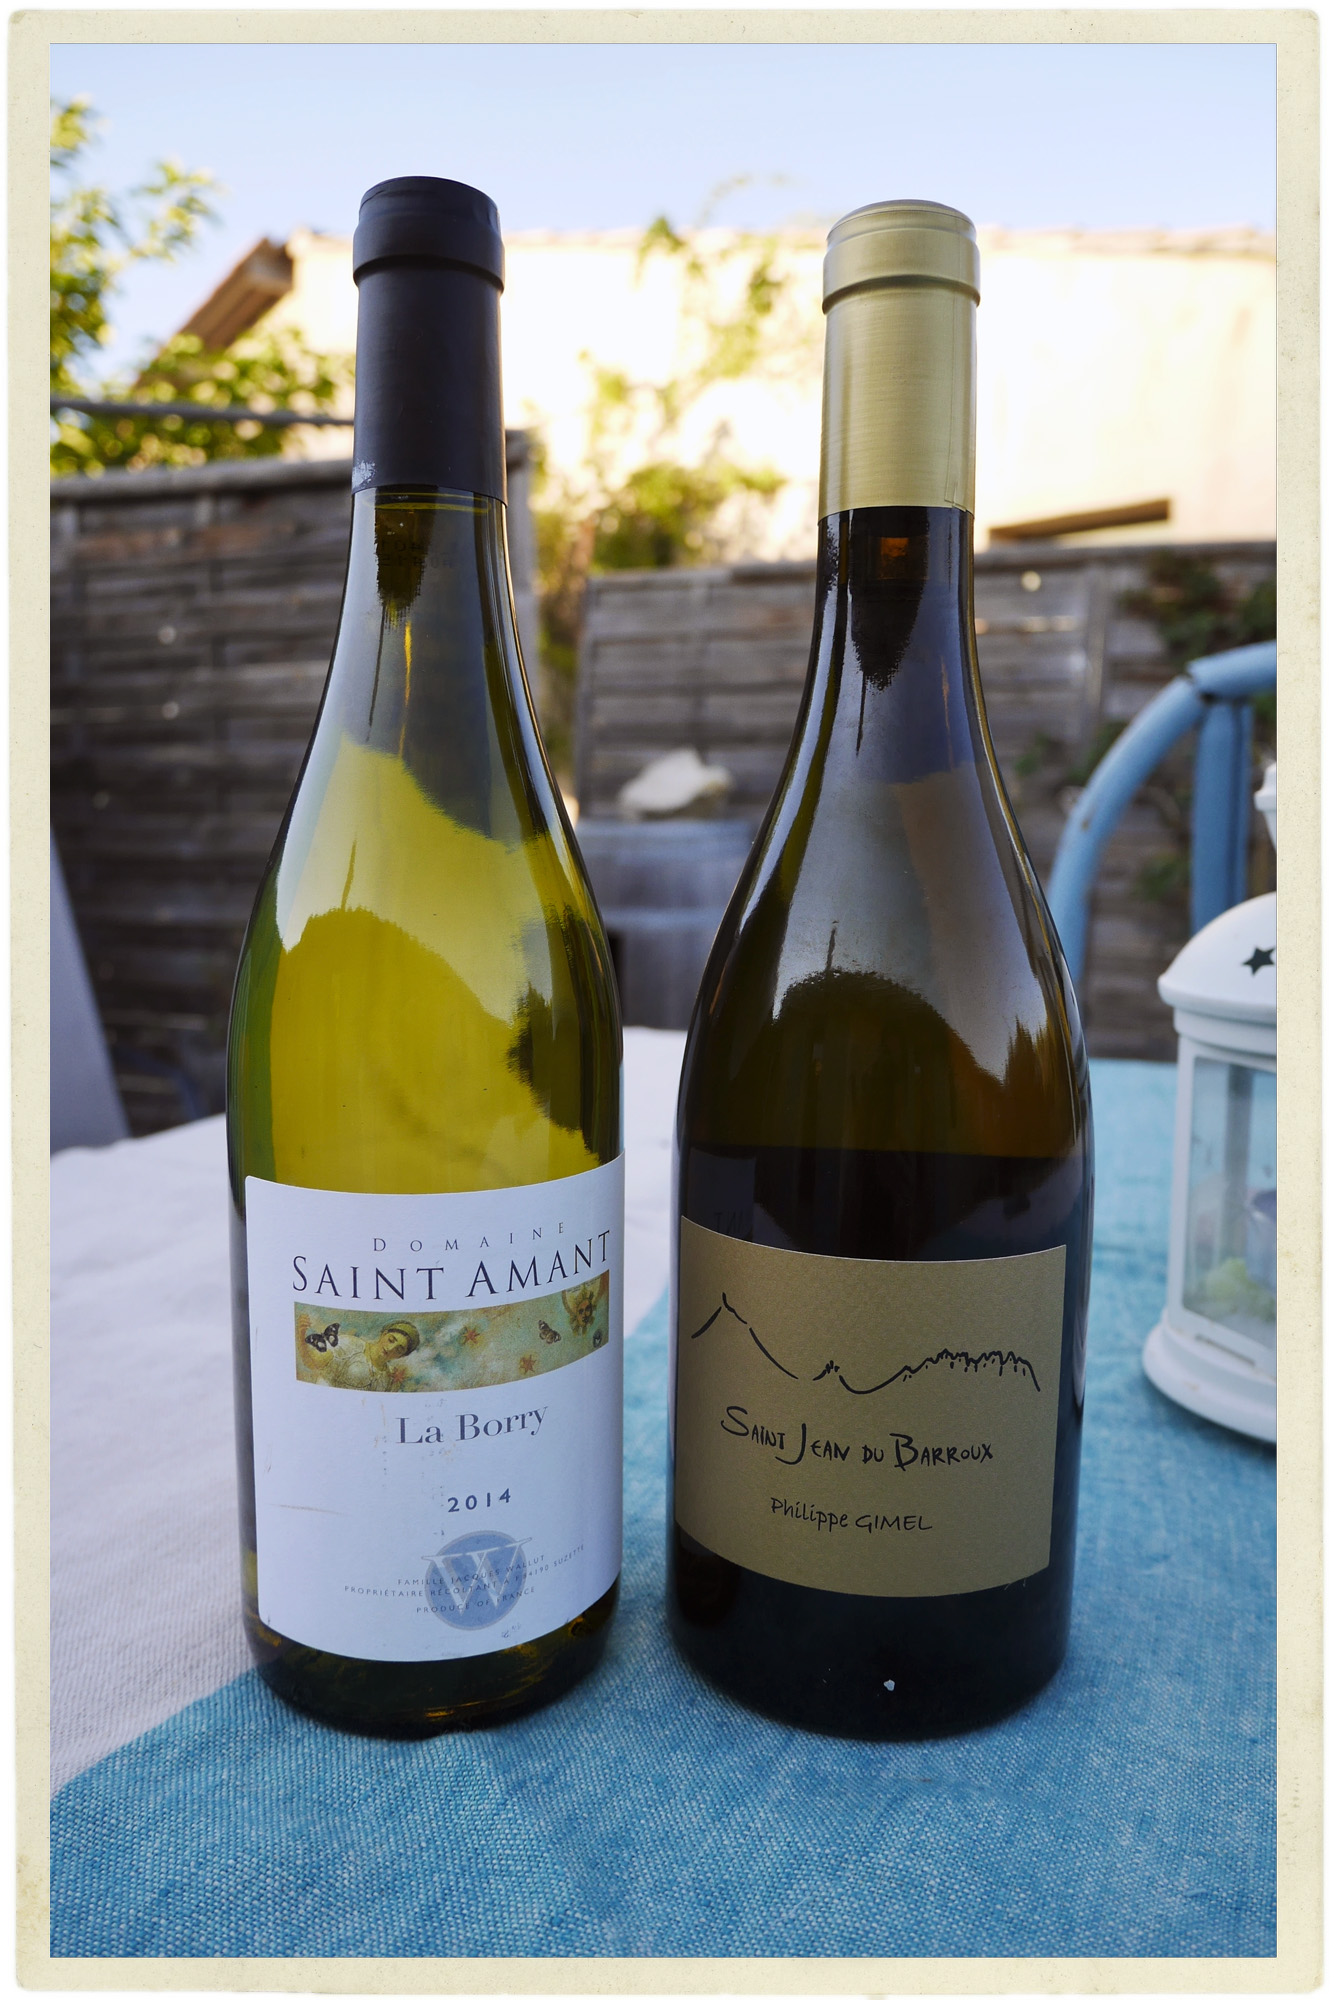 Wines from the Ventoux... it's time to enjoy!